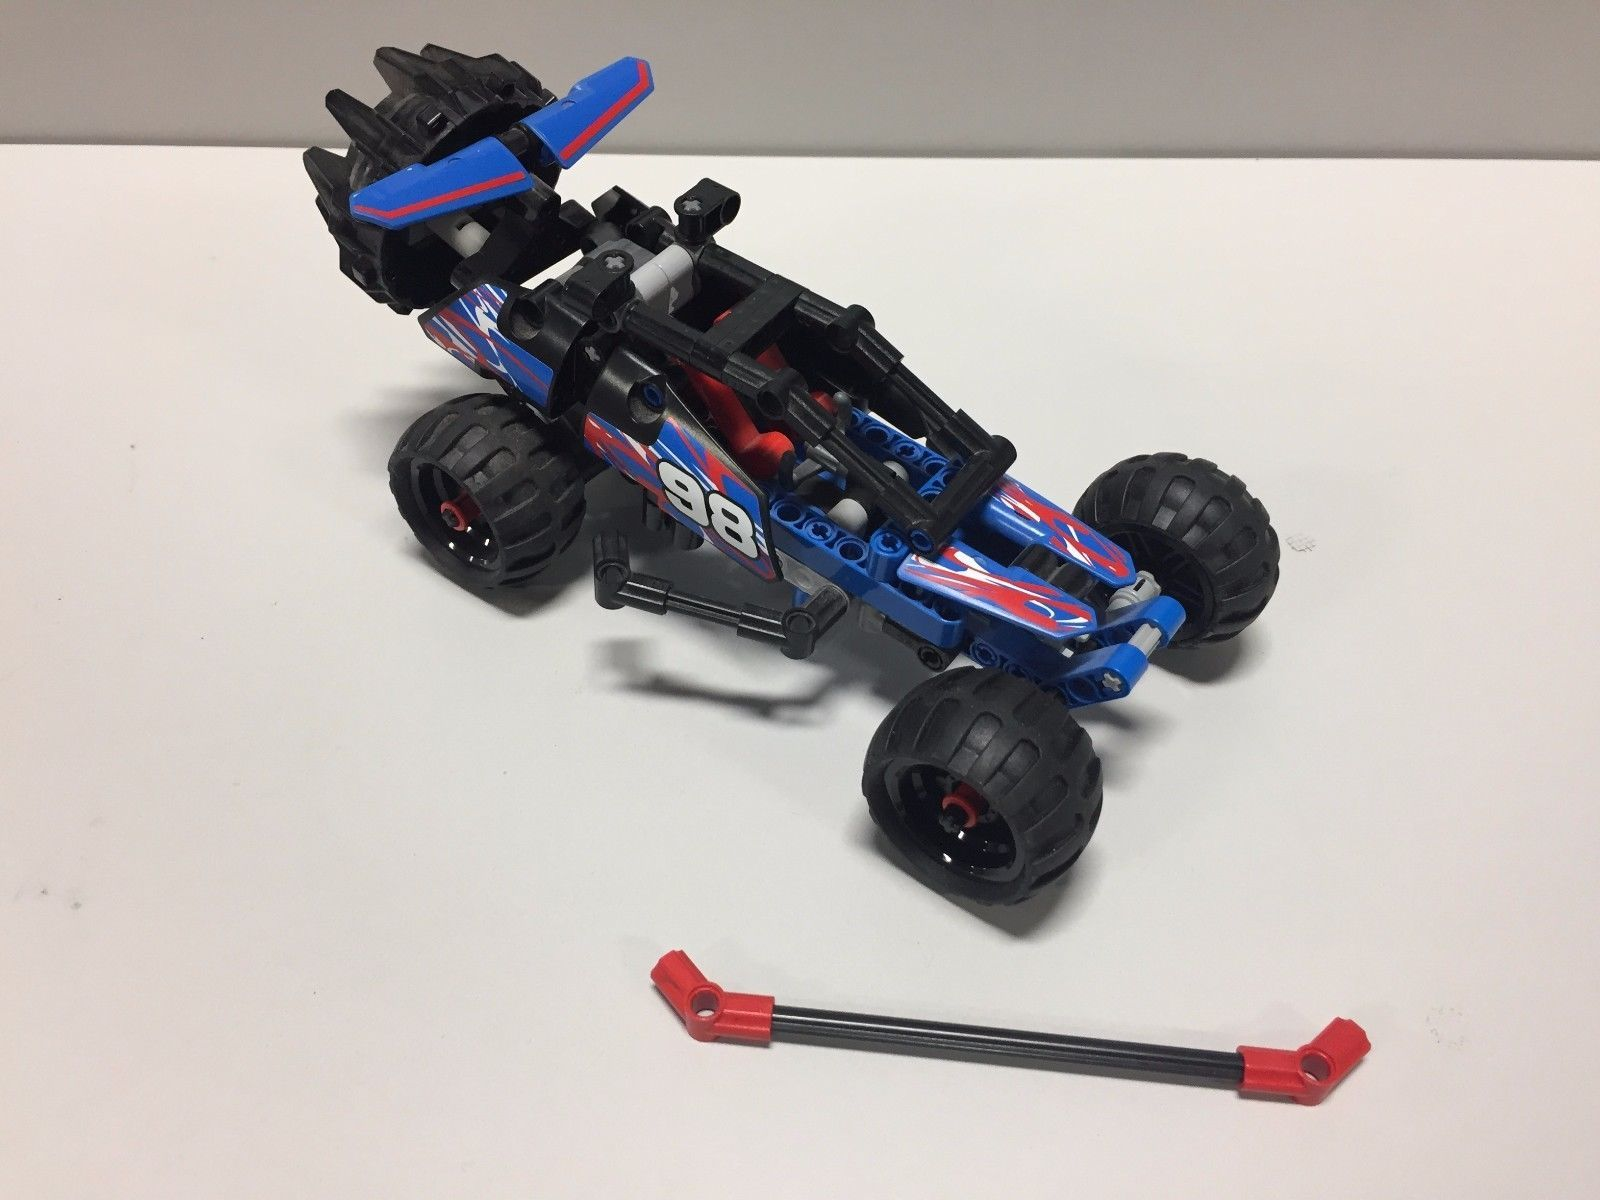 Lego car toys  LEGO Technic  OffRoad Racer Used with a pullback motor